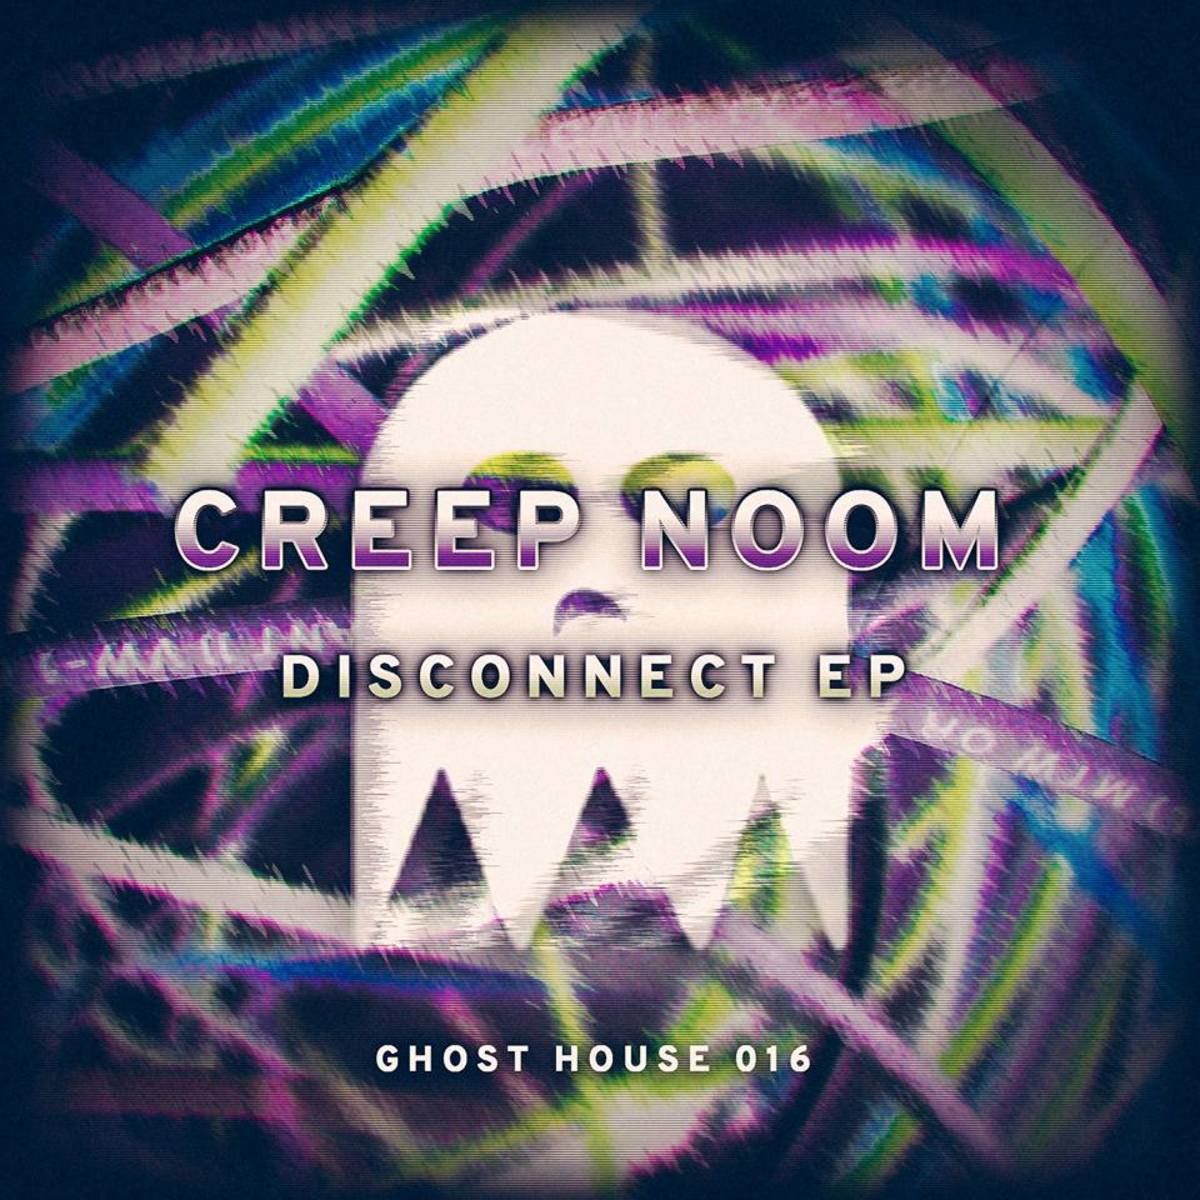 Creep N00m's latest E.P forthcoming Ghost House Records.